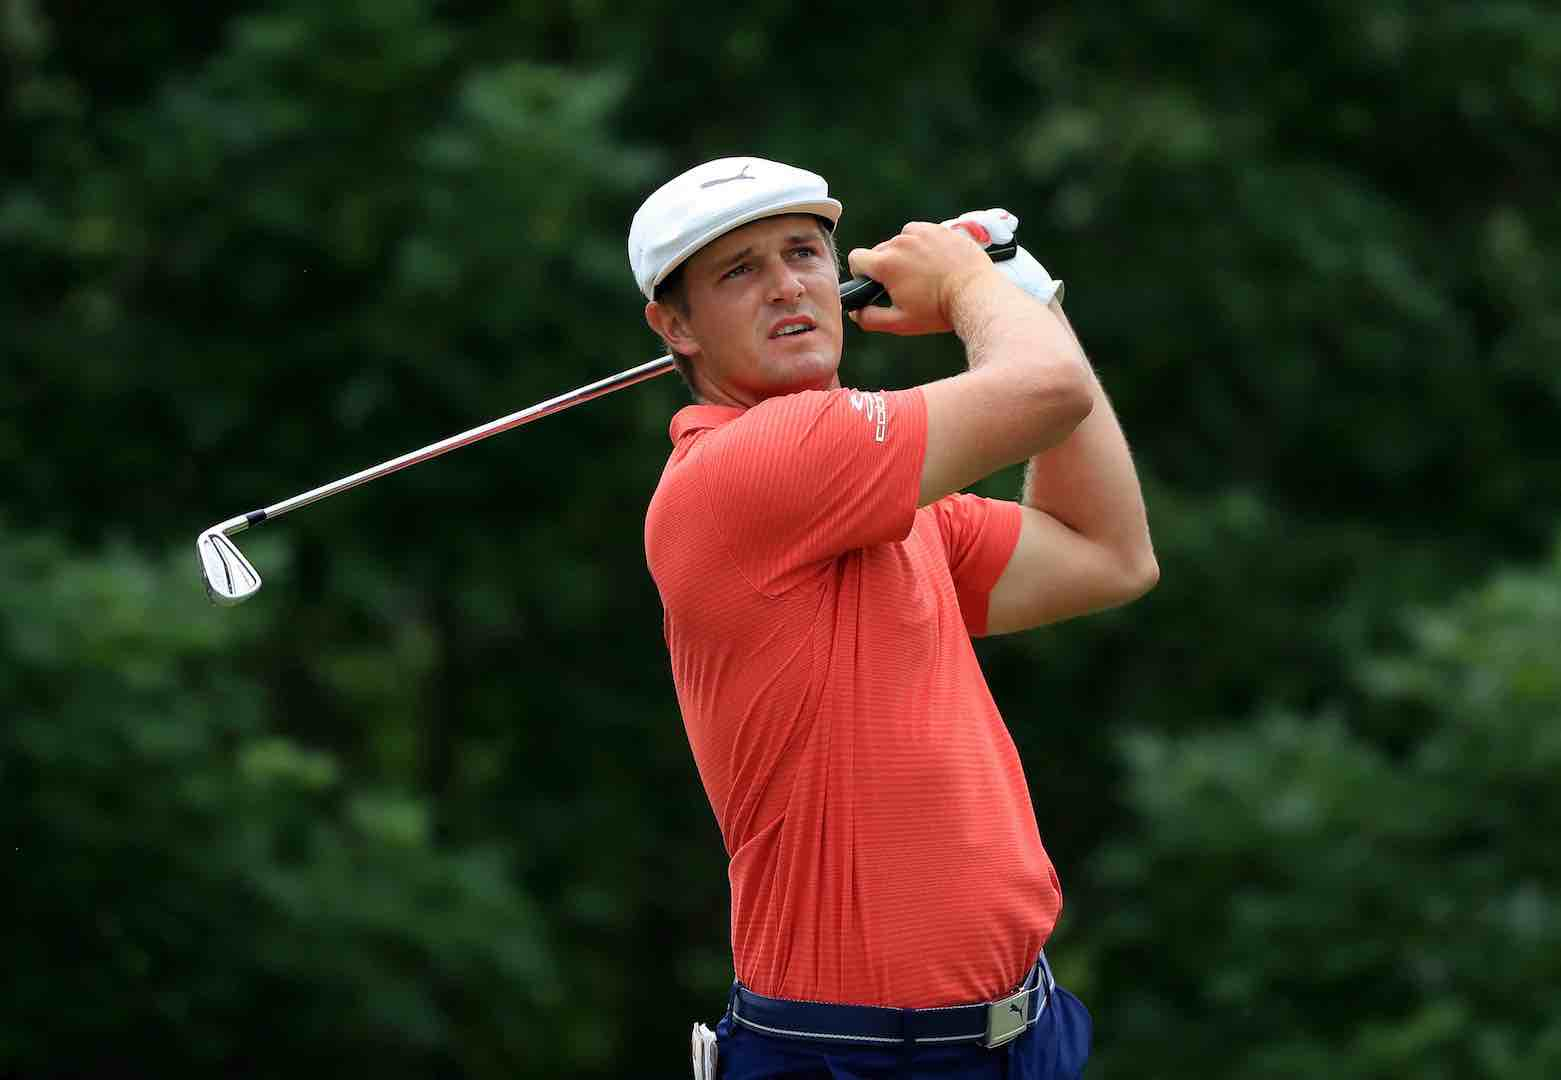 Bryson de Chambeau captures 2nd PGA tour victory